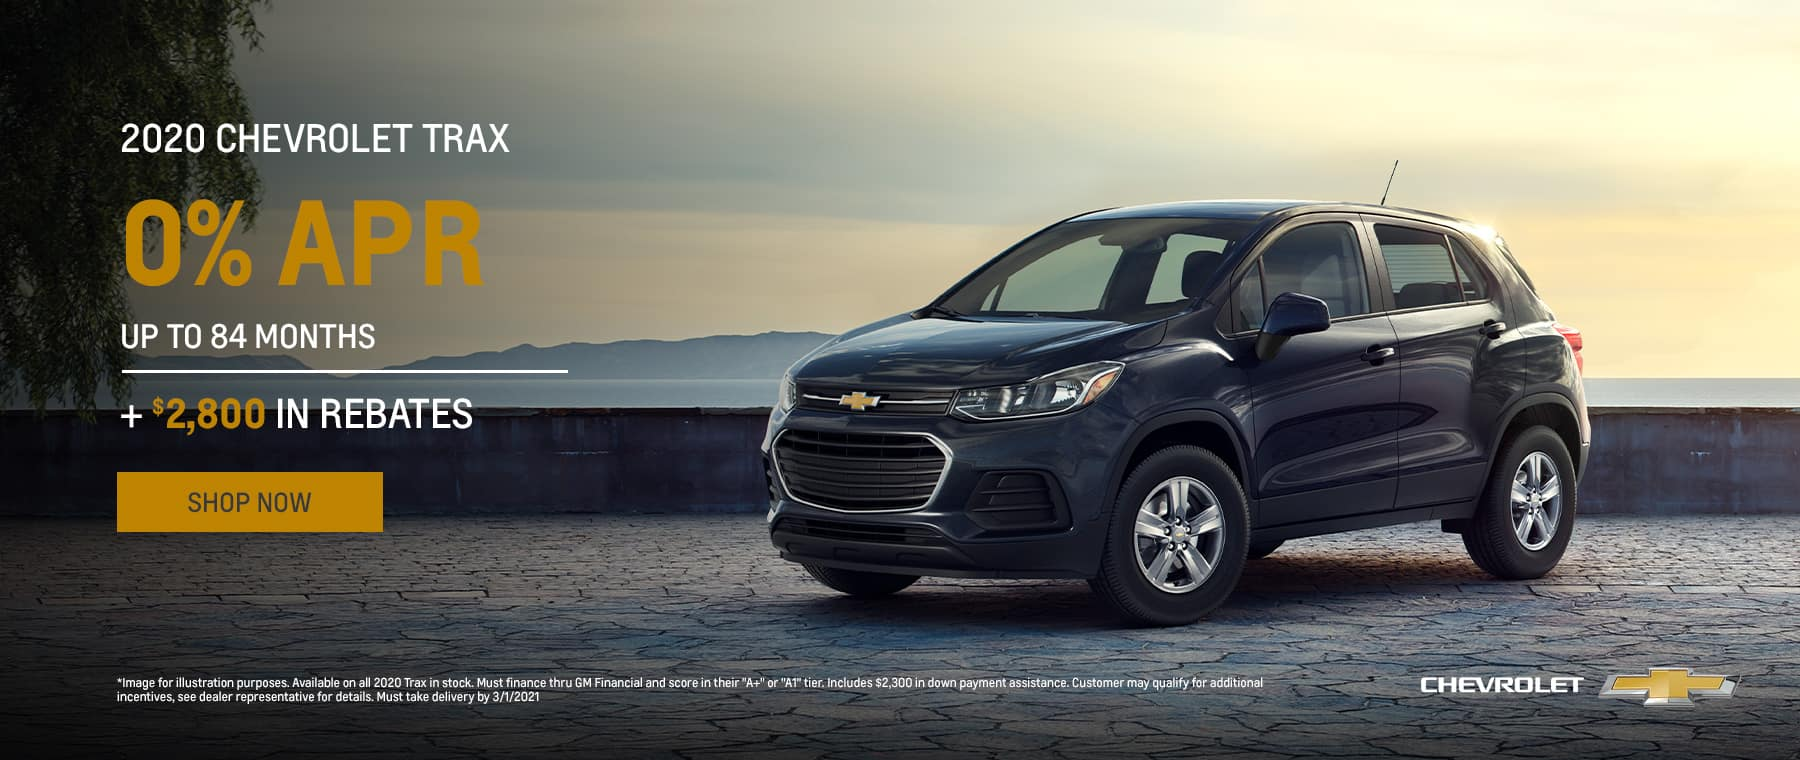 Feb2021 - 2020 Chevrolet Trax 0% APR up to 84 mos + $2800 in rebates